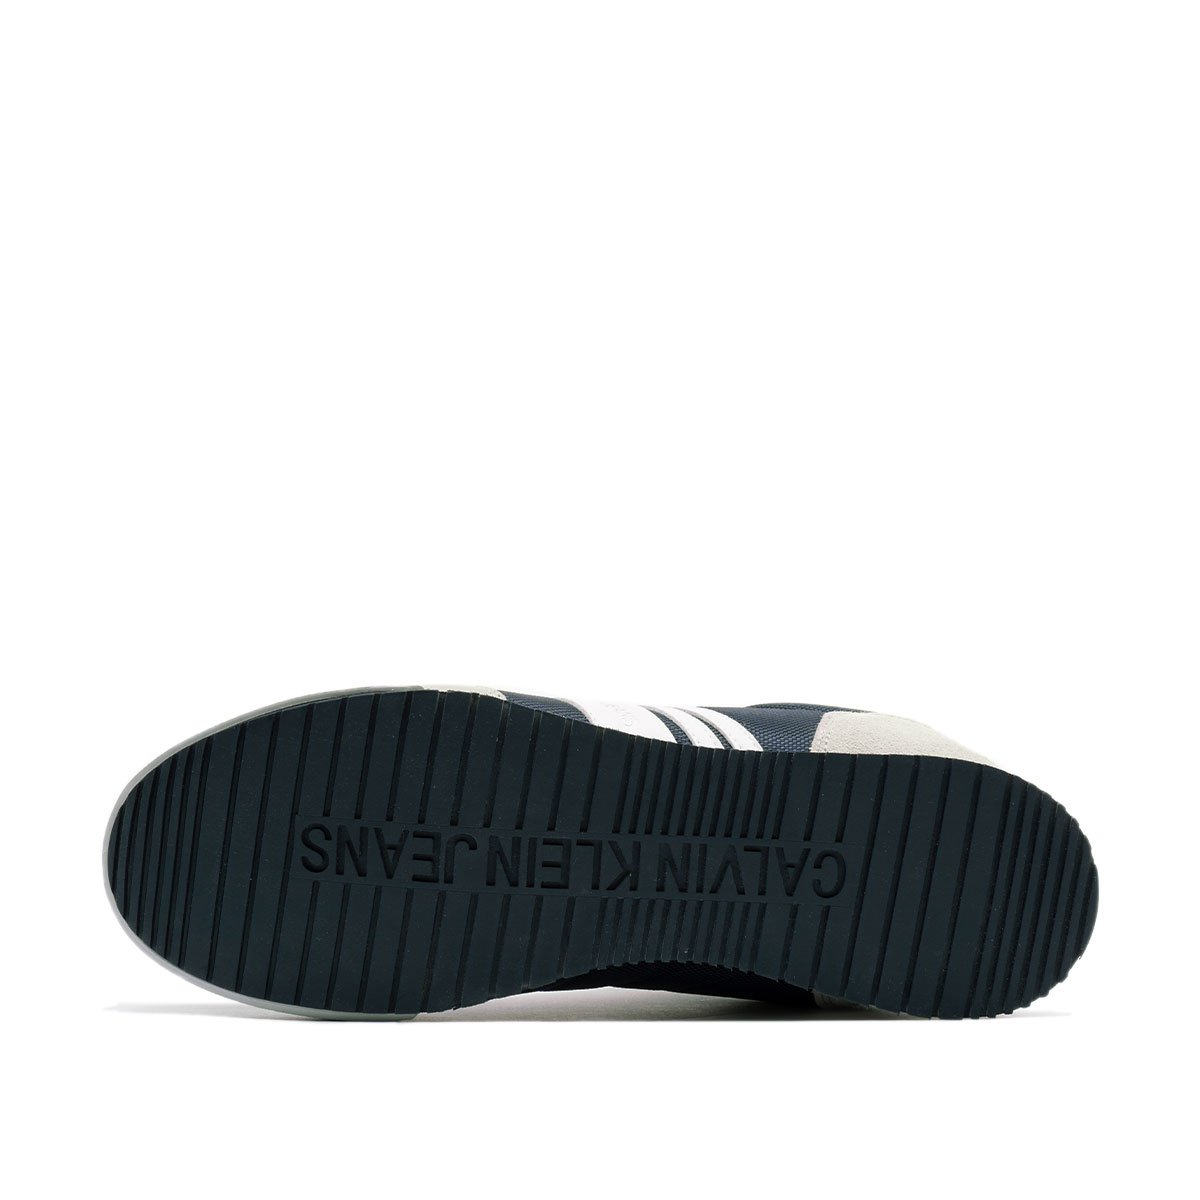 Calvin Klein Low Profile Sneaker Lace Up